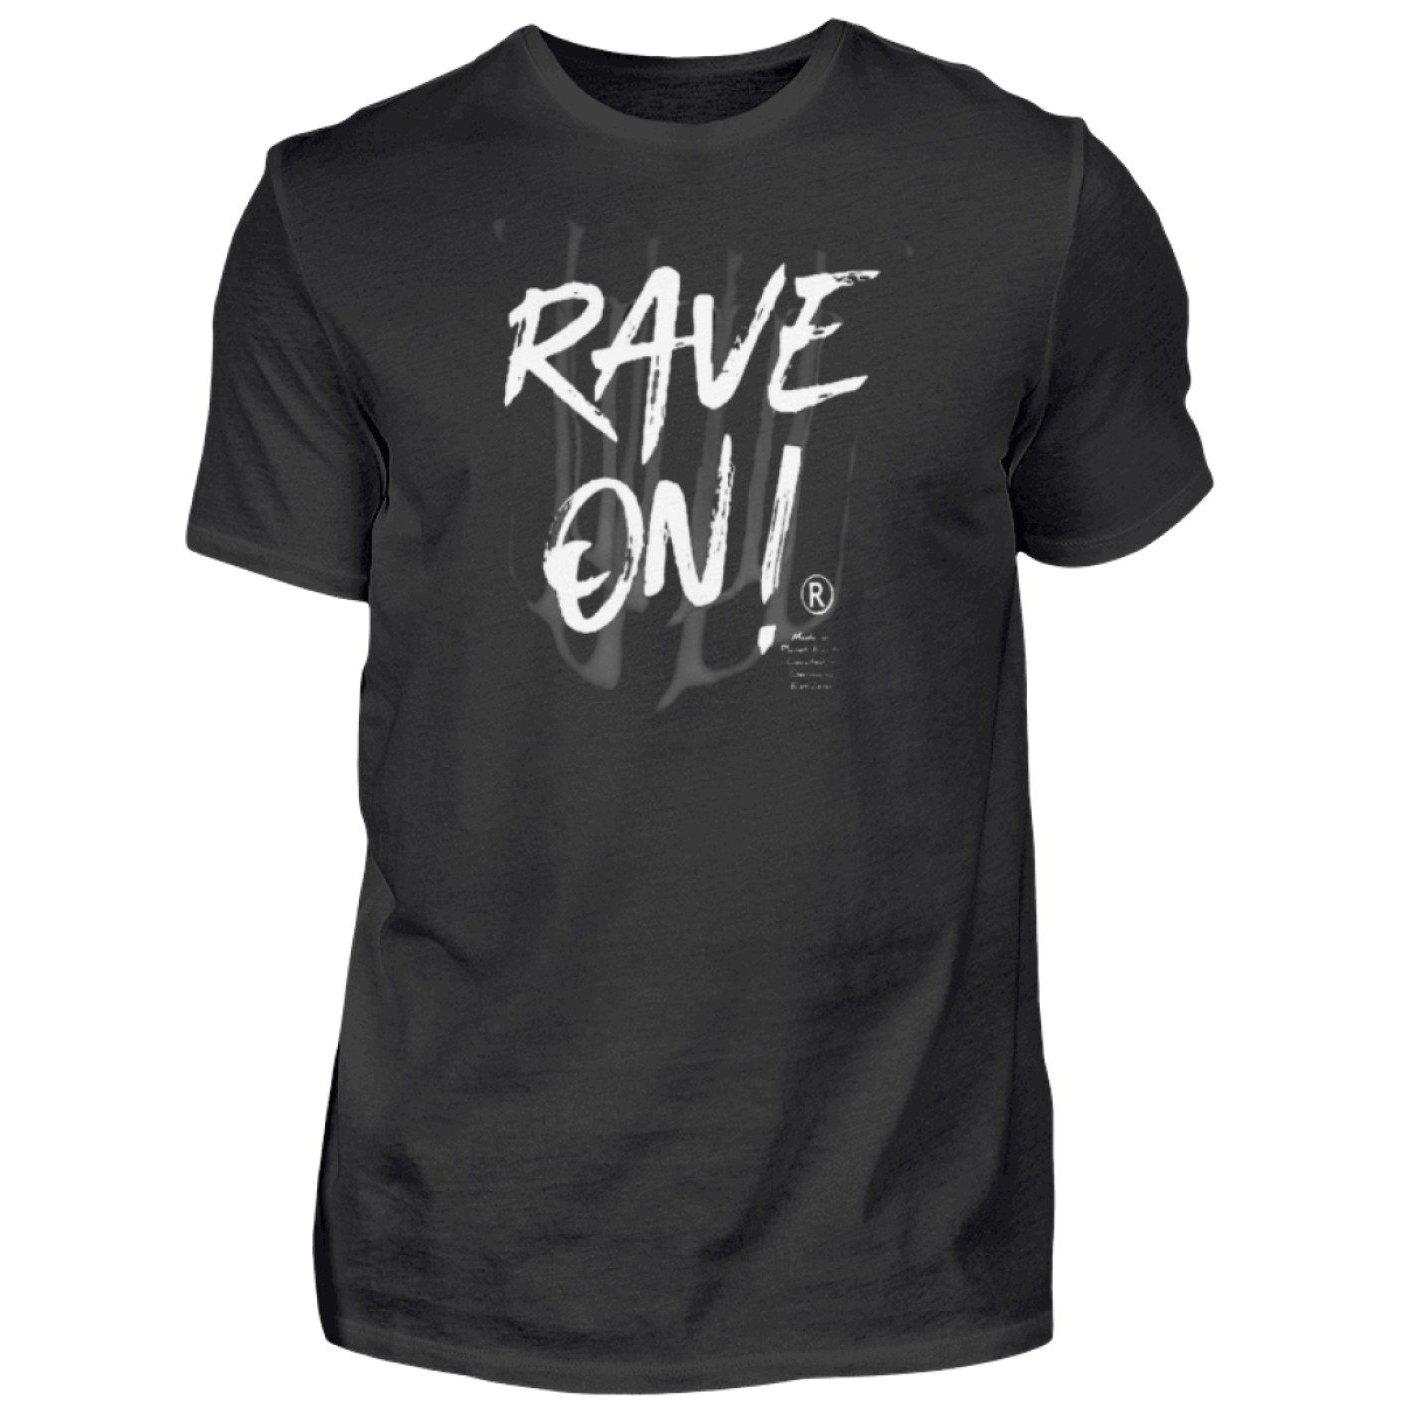 Rave On!® - Made On Planet Earth B2k20 - Herren Premiumshirt Herren Premium Shirt Black / S - Rave On!® der Club & Techno Szene Shop für Coole Junge Mode Streetwear Style & Fashion Outfits + Sexy Festival 420 Stuff